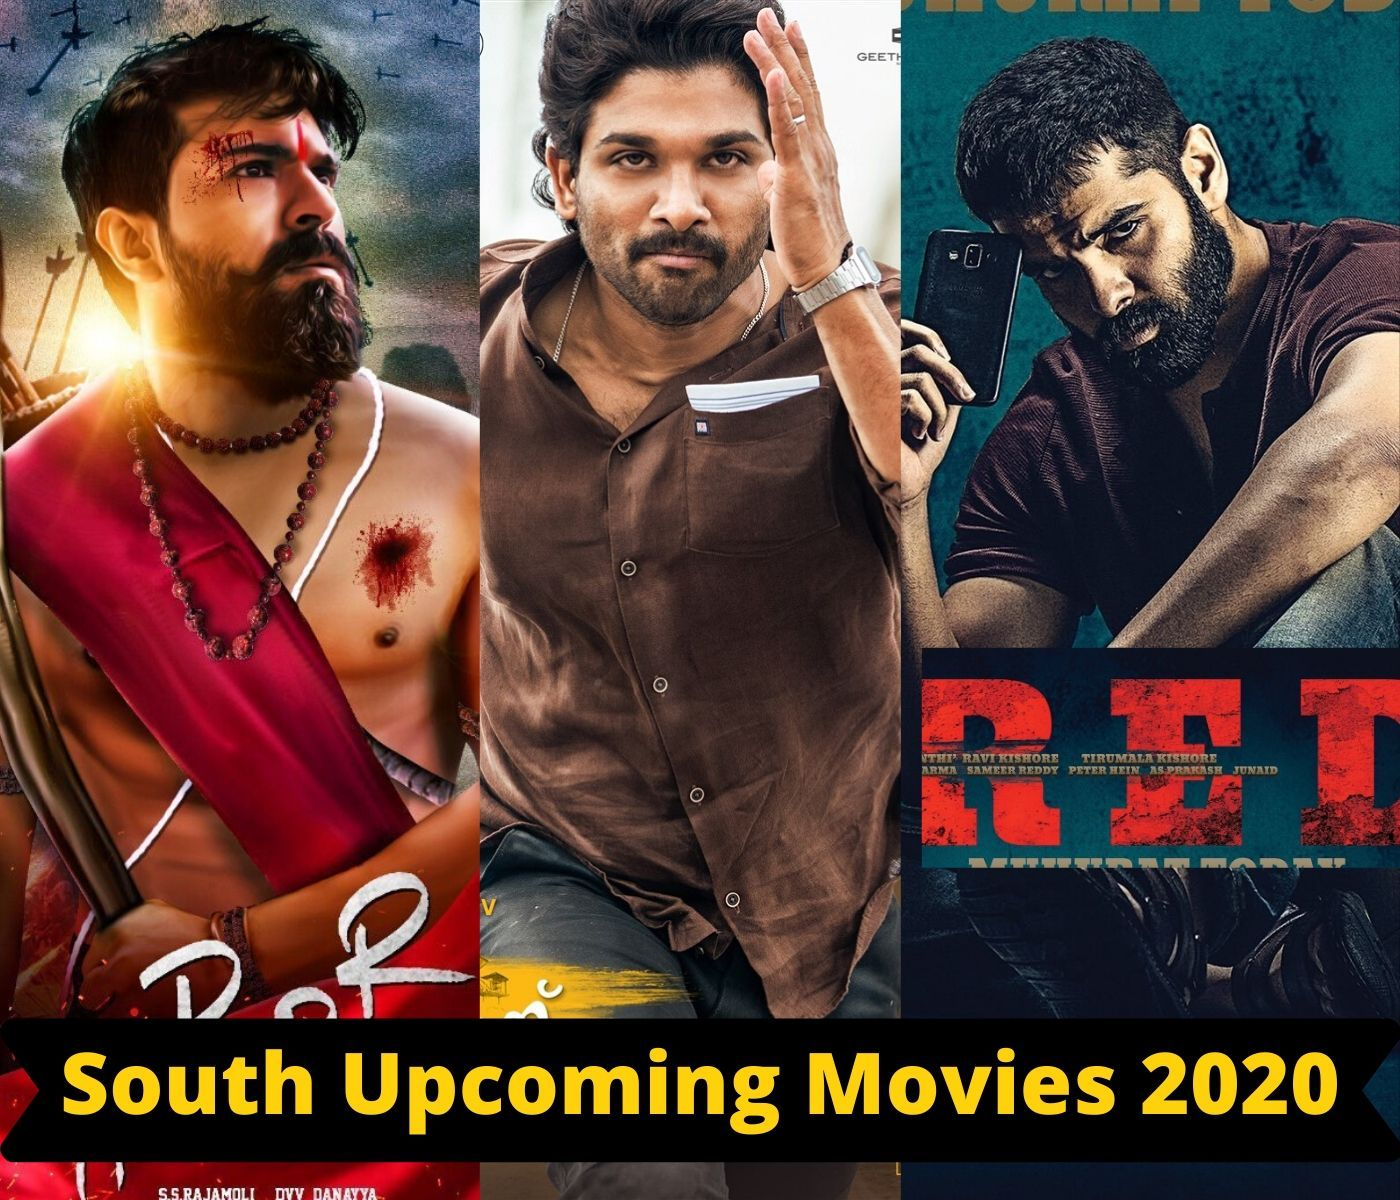 Tollywood Complete Upcoming Movies List 2020 With Cast And Release Date Upcoming Movies Upcoming Movies 2020 Kannada Movies